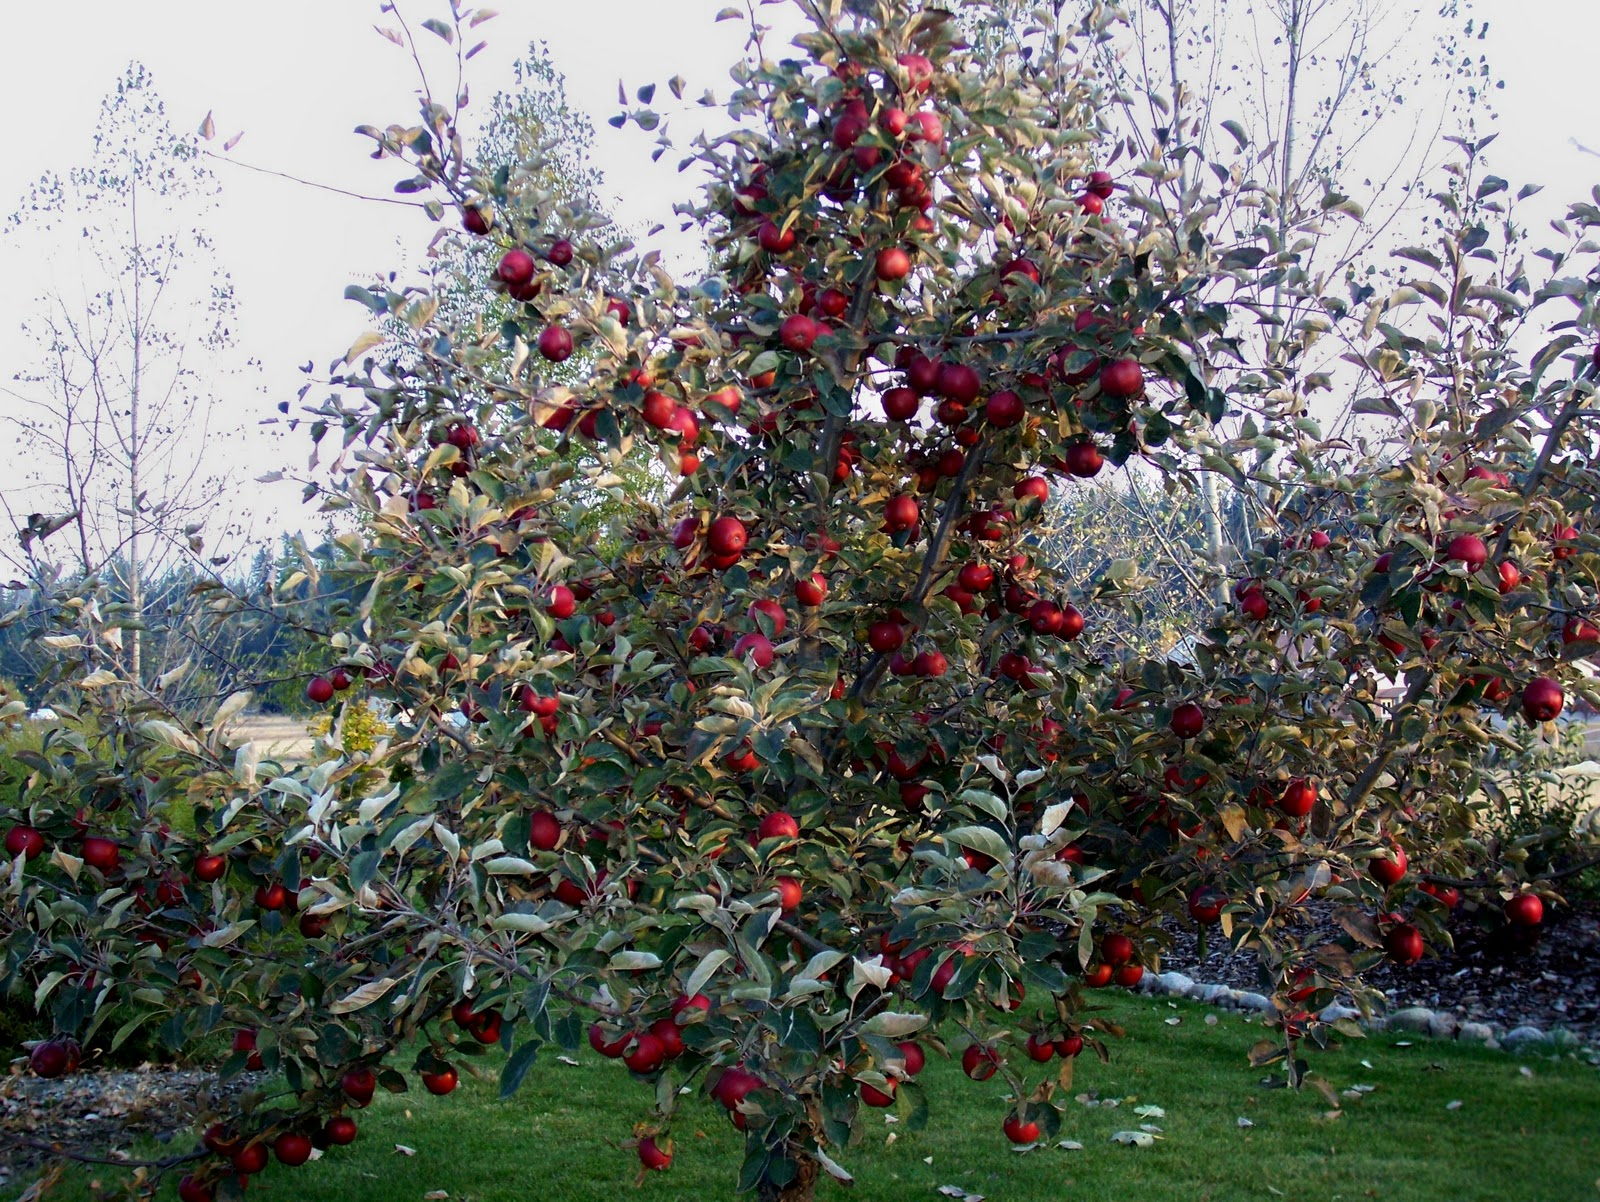 apple trees Pruning and training apple trees by lee calhoun pruning demonstrations available on our website:' wwwcenturyfarmorchardscom otherwise sensible people often become.